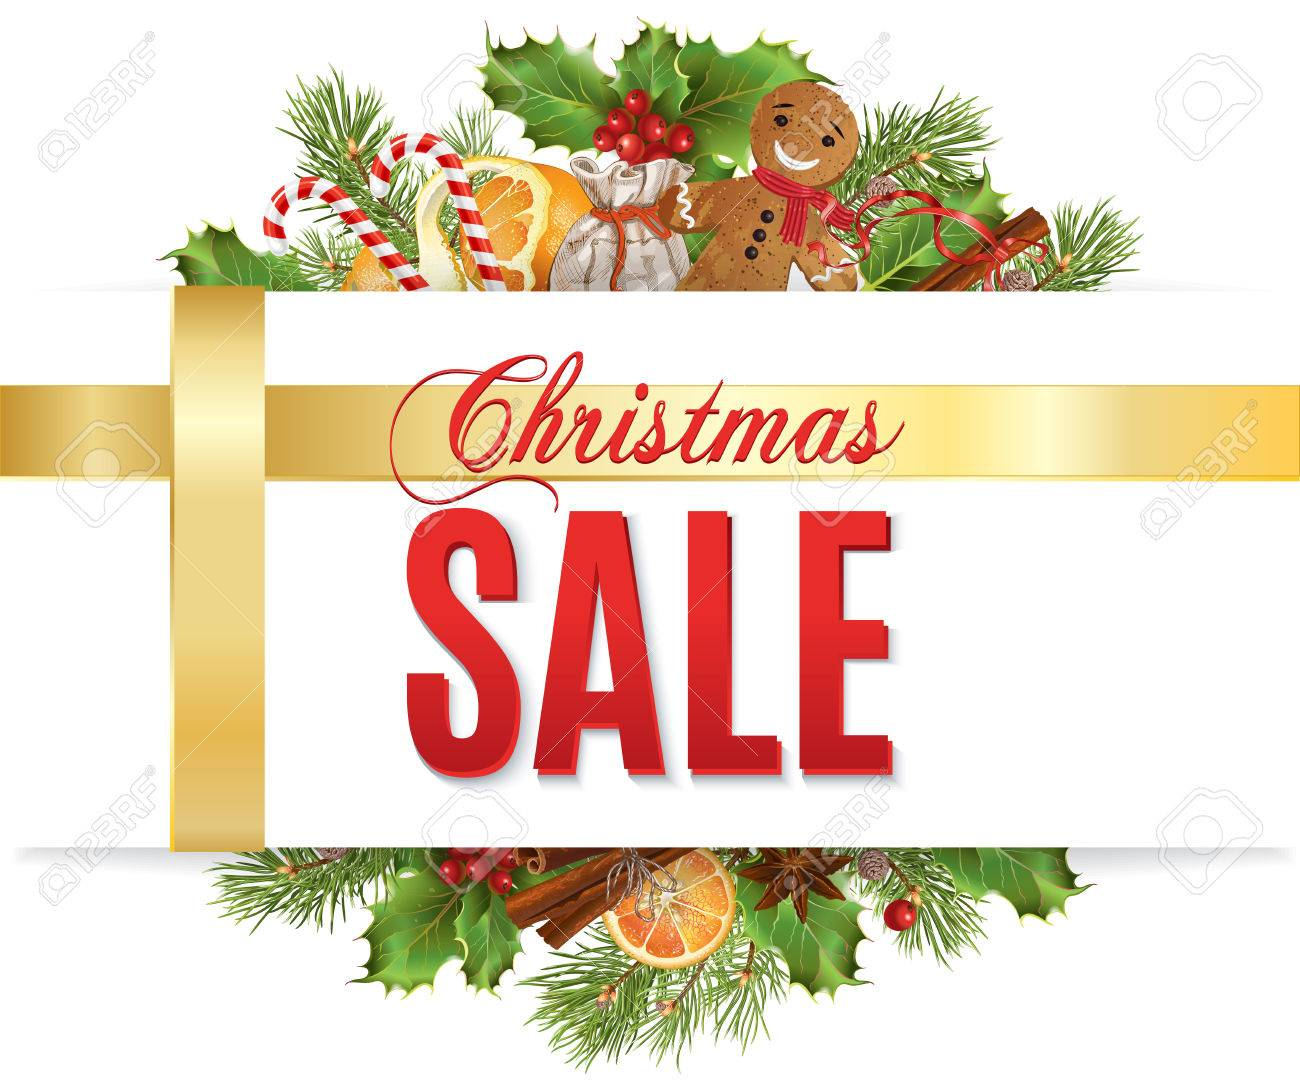 Christmas Sale With Traditional Decoration Christmas Tree Branches Royalty Free Cliparts Vectors And Stock Illustration Image 64575822